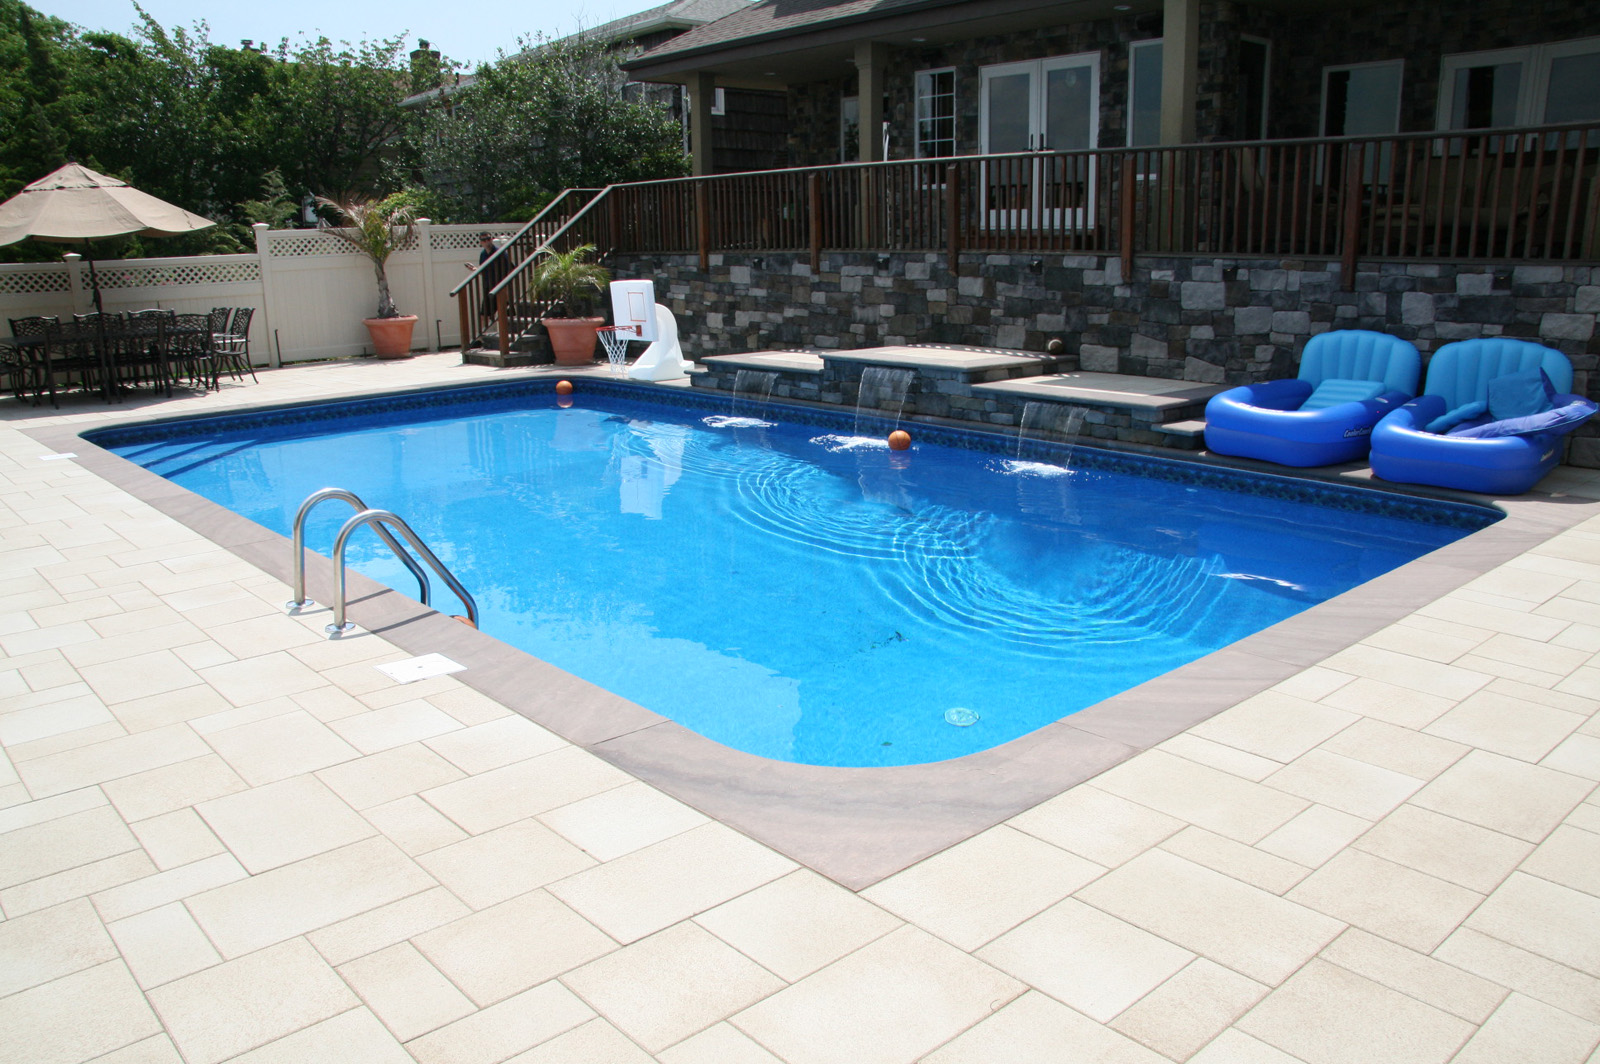 Professional landscape design with a pool waterfall in Long Island, NY